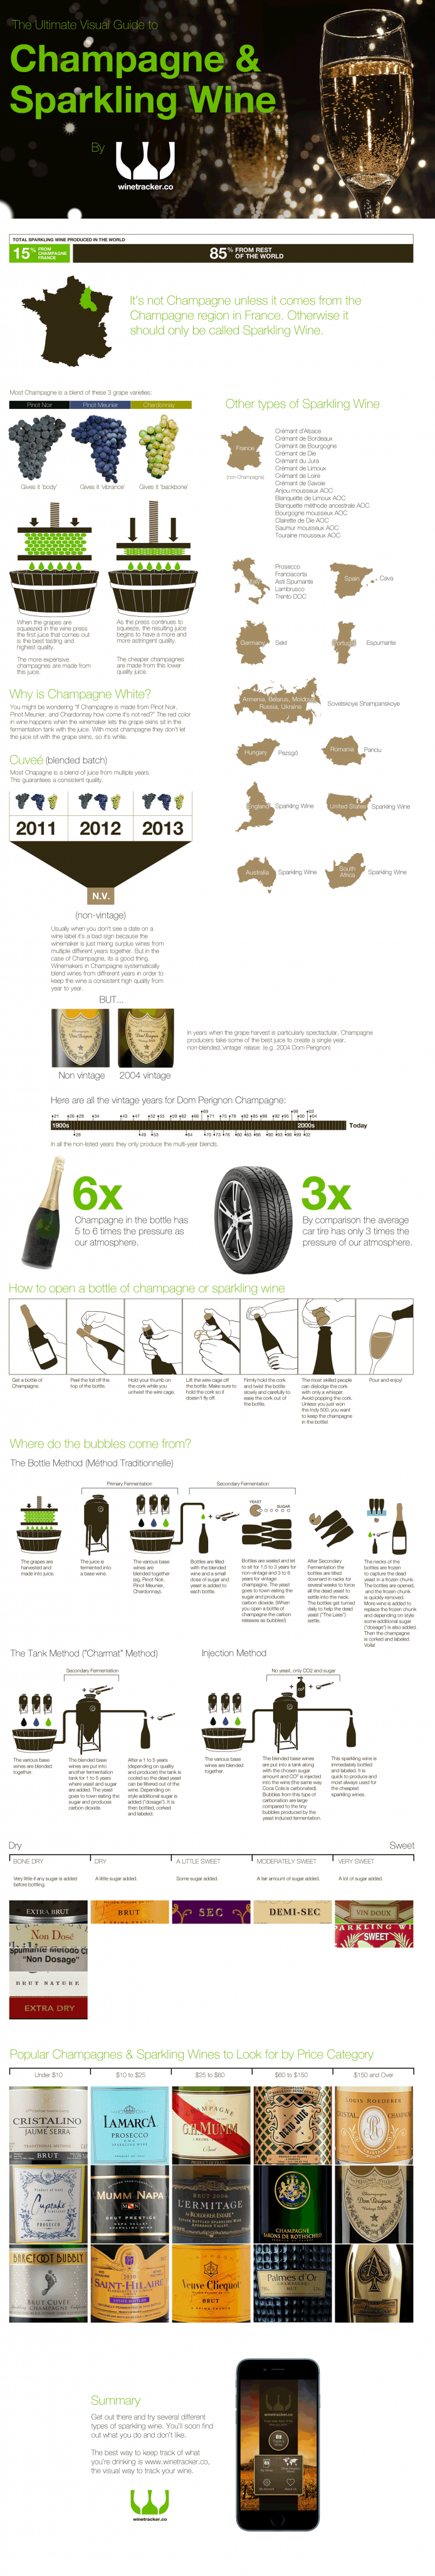 The Ultimate Visual Guide to Champagne and Sparkling Wine